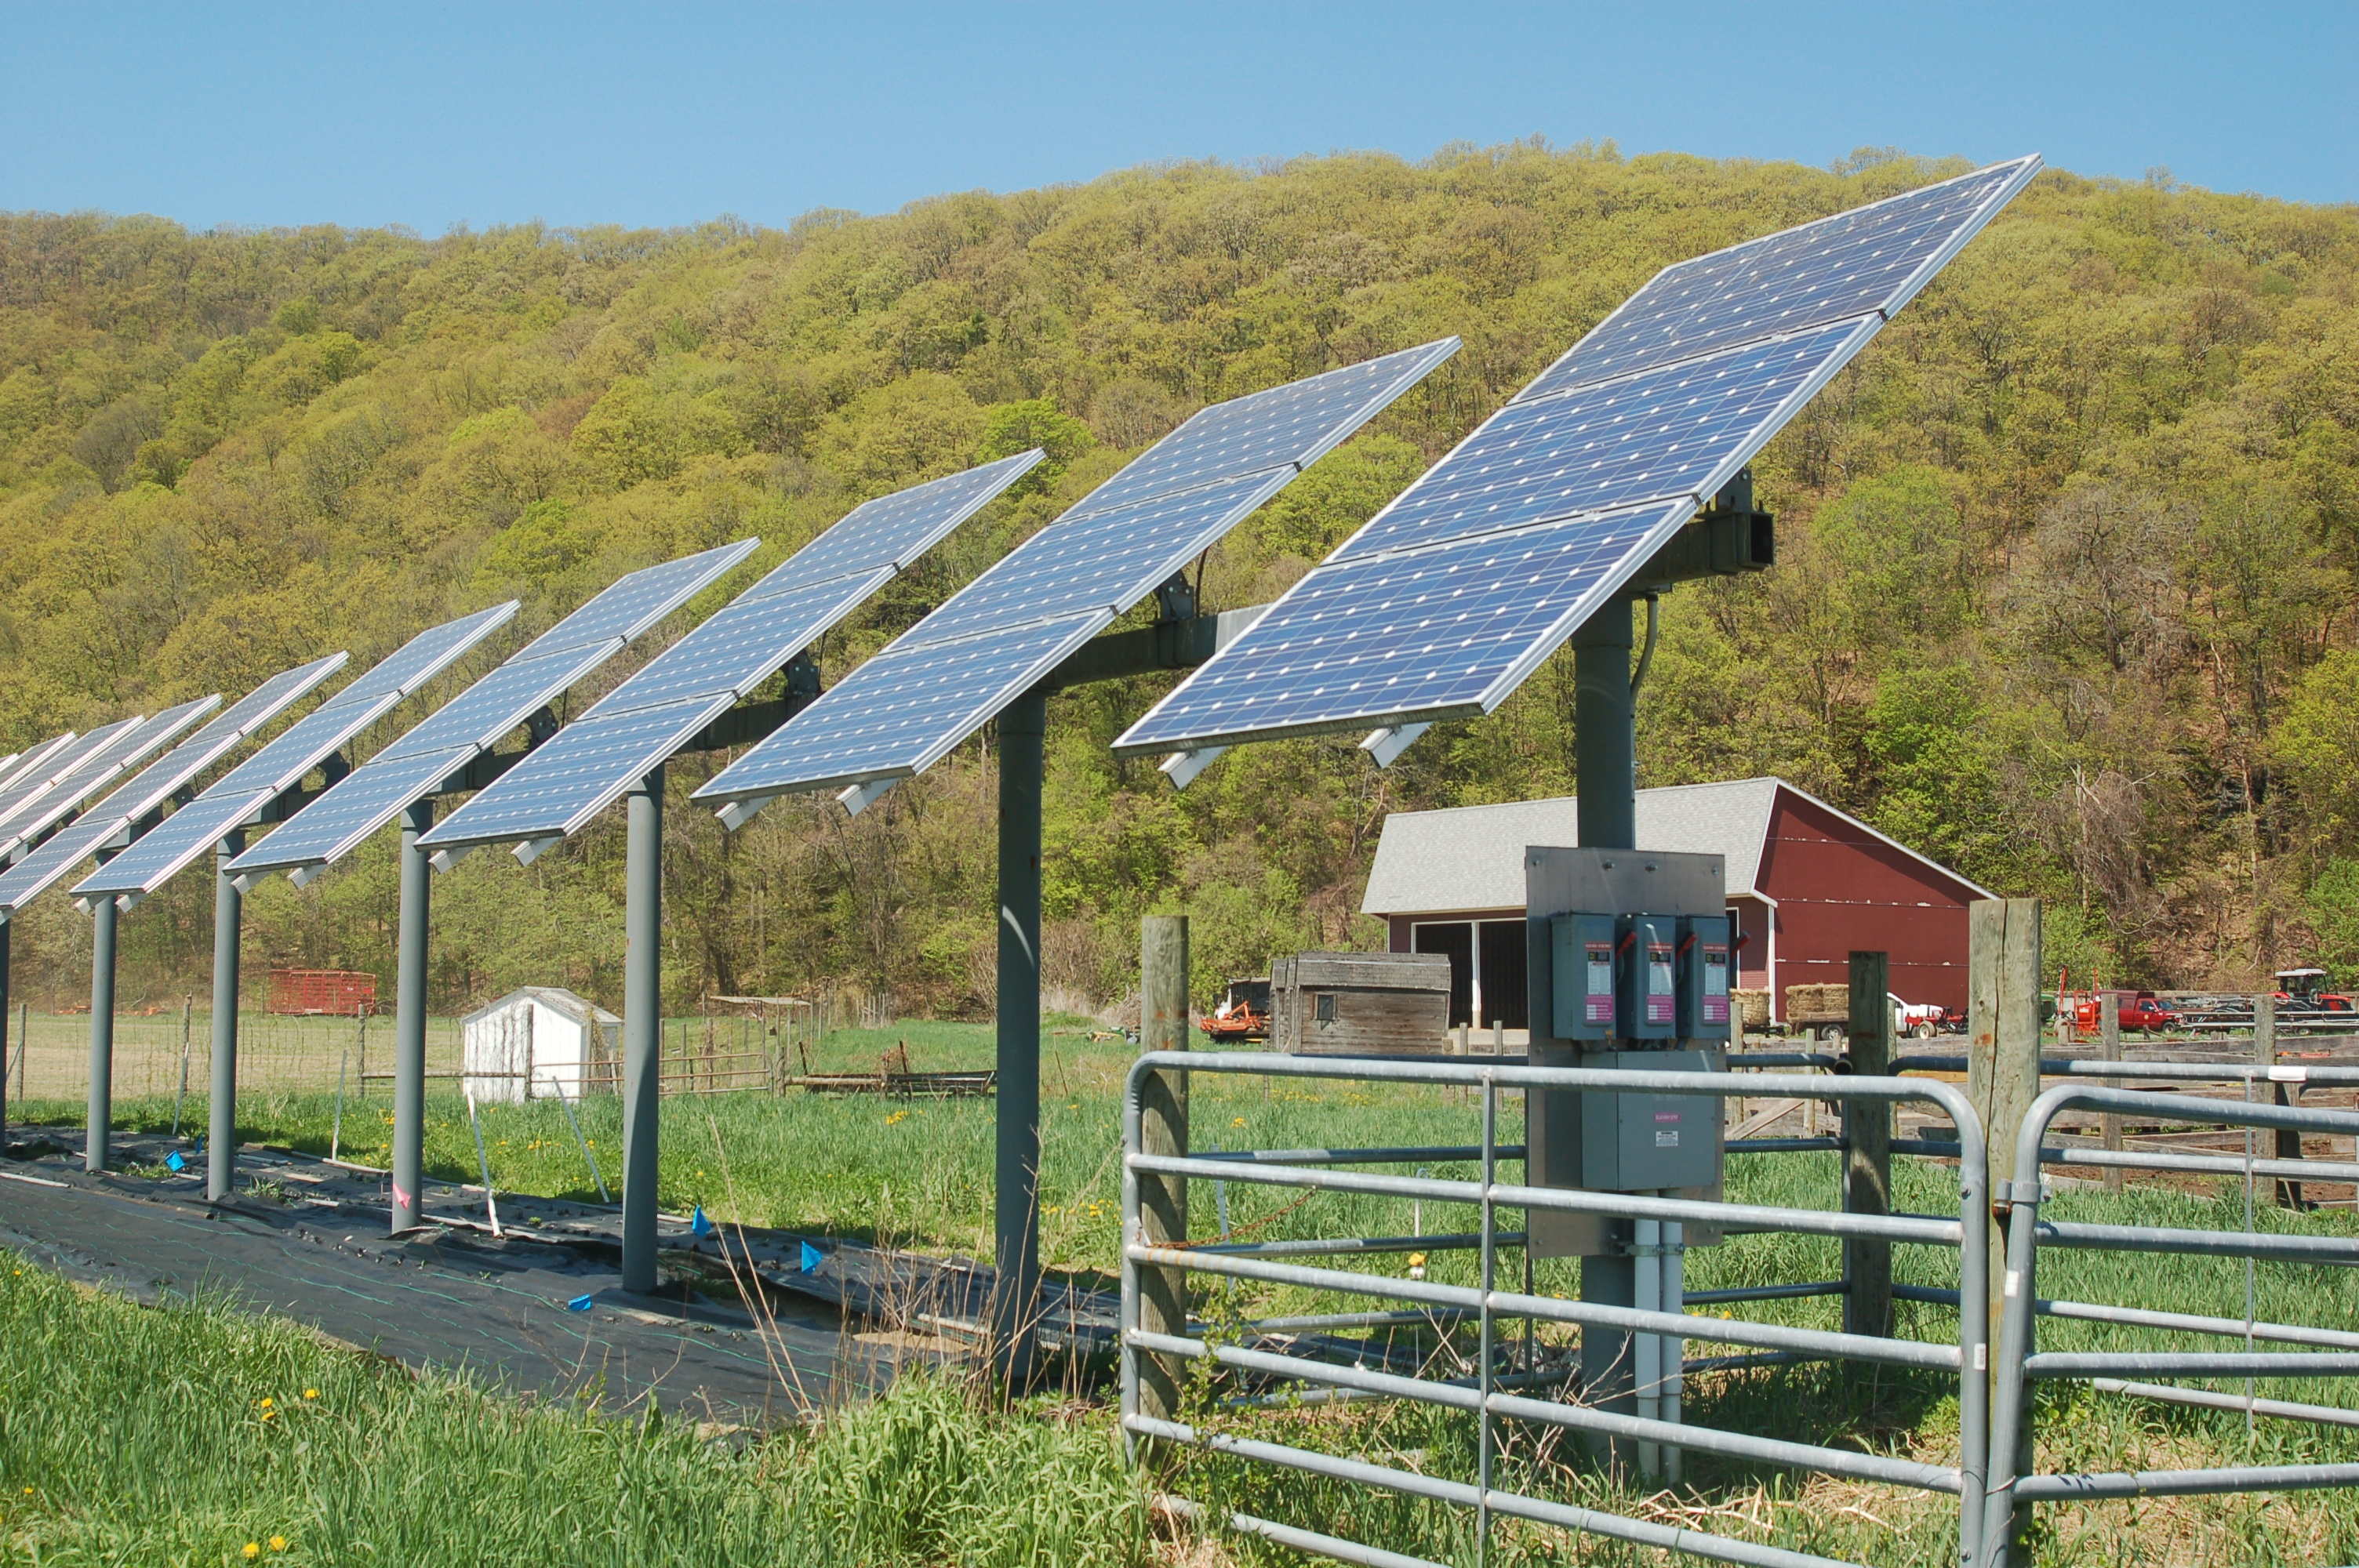 Photo courtesy of UMass Clean Energy Extension